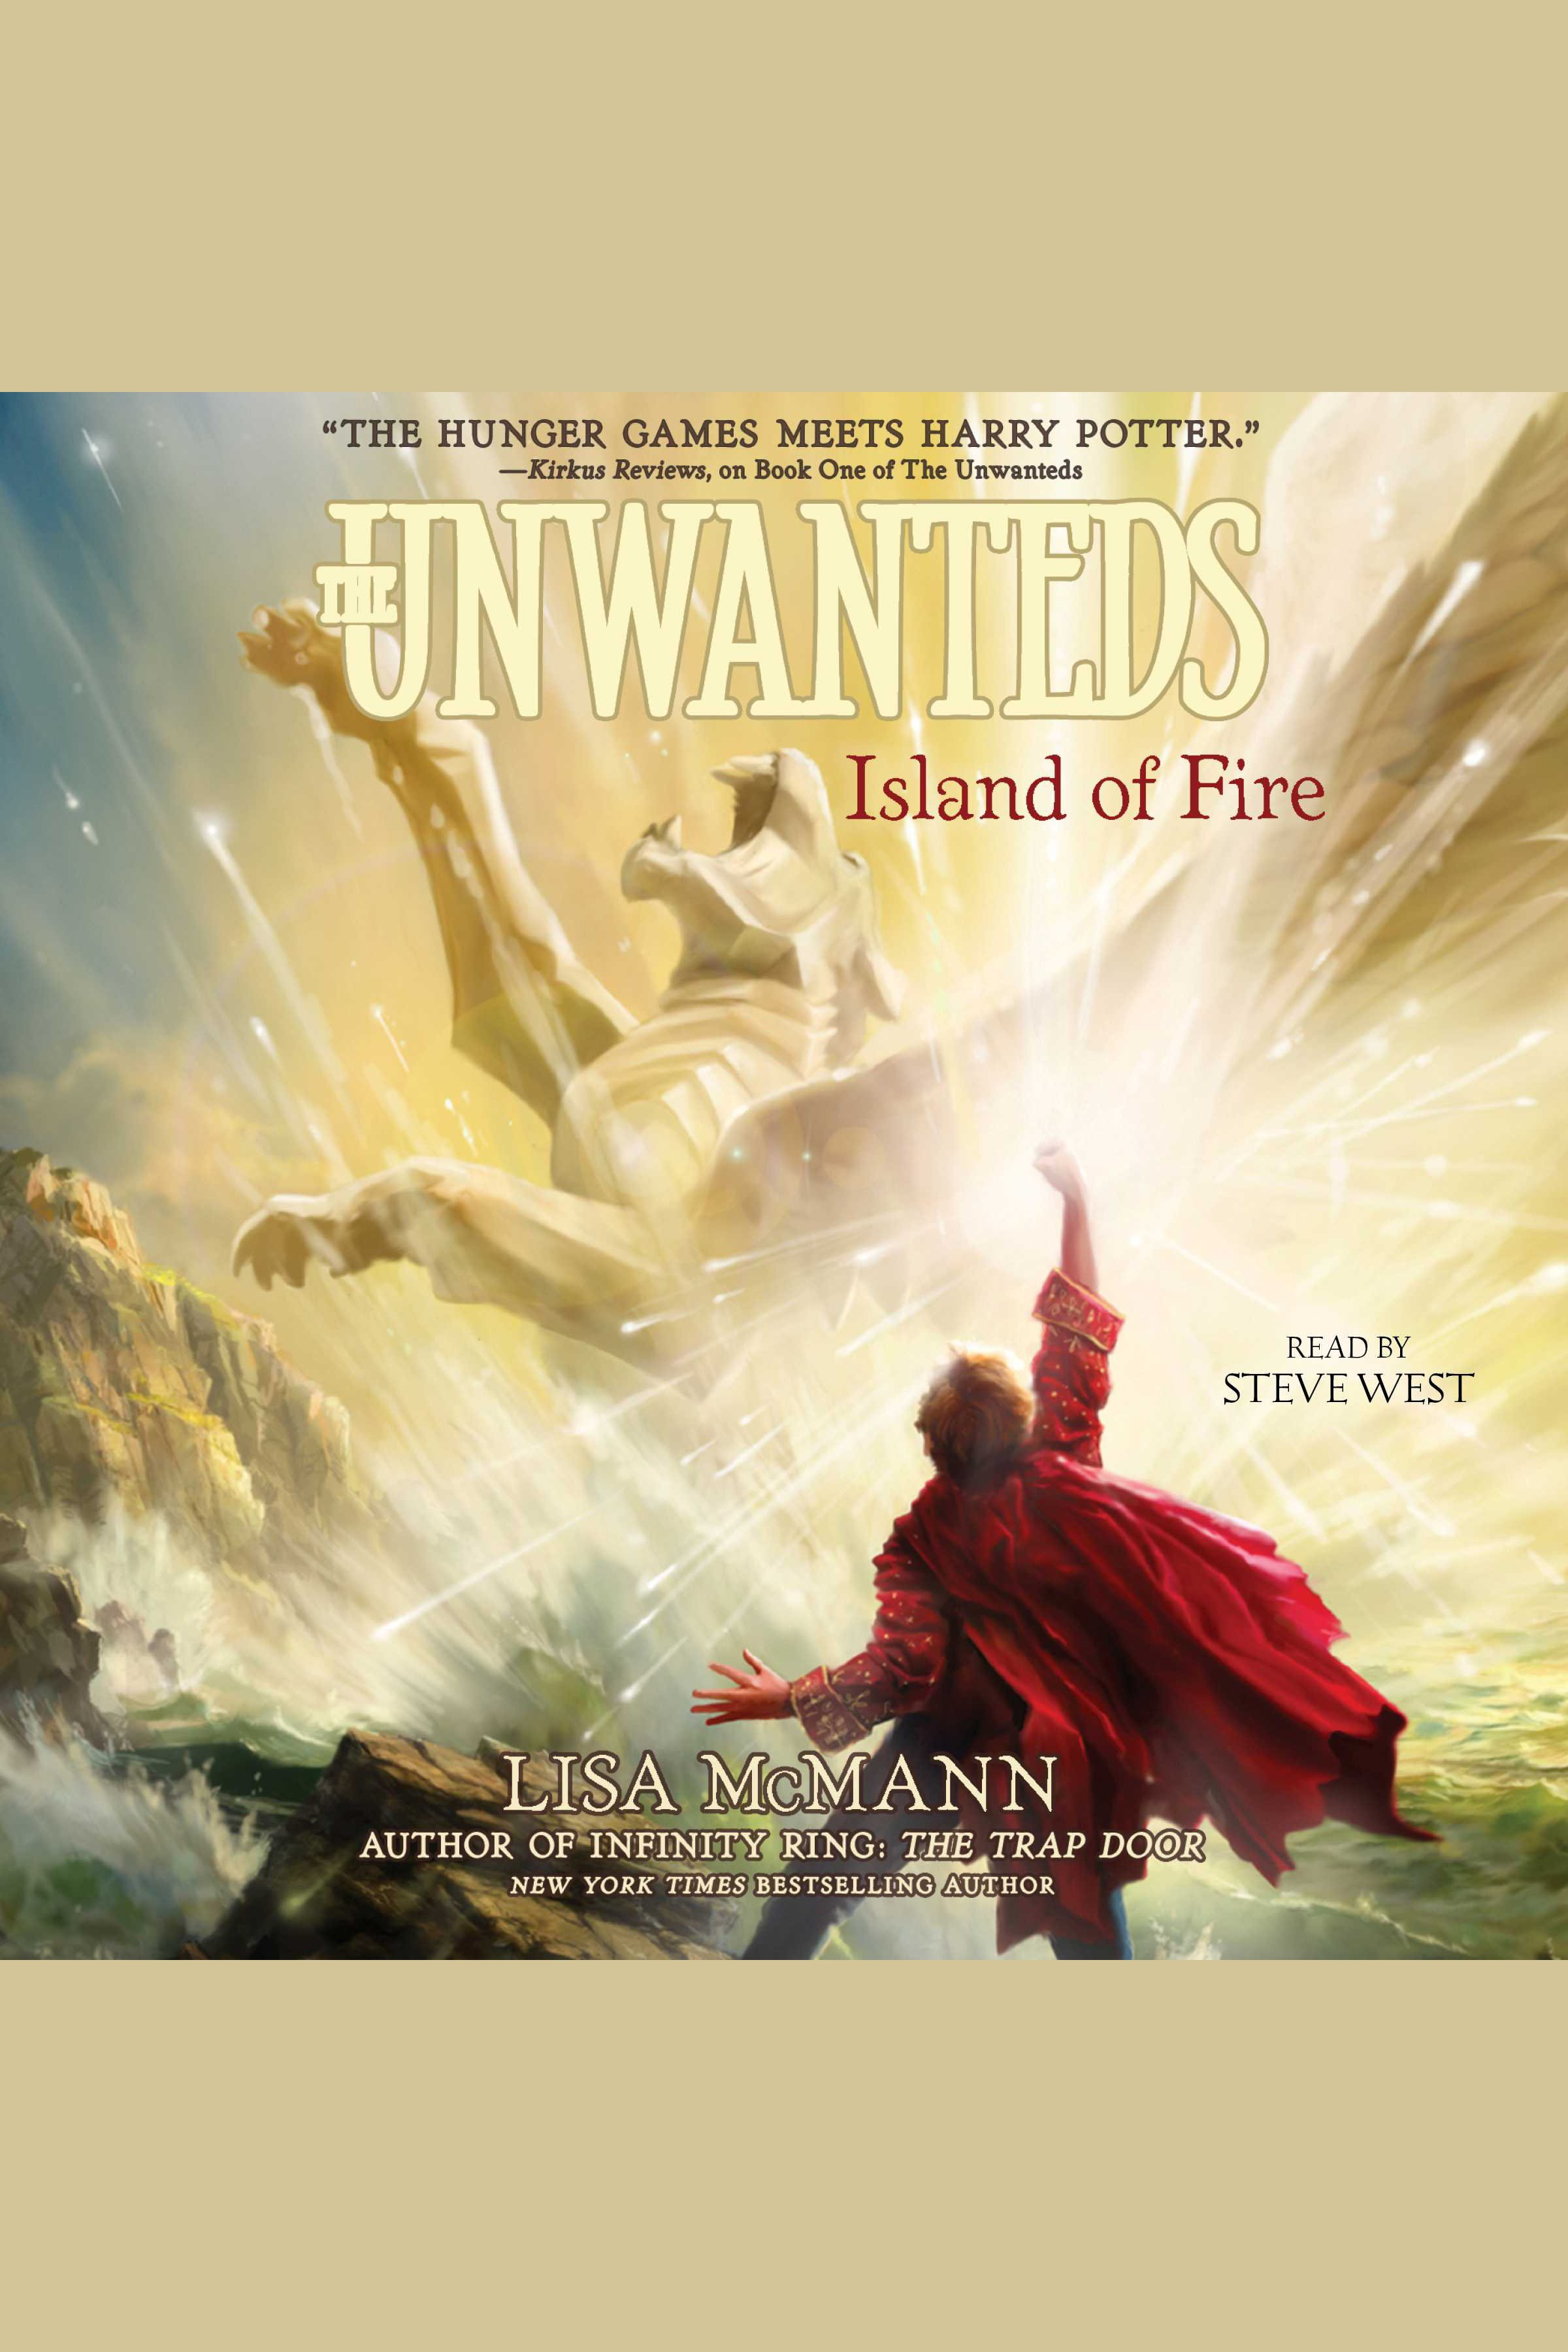 Island of fire cover image